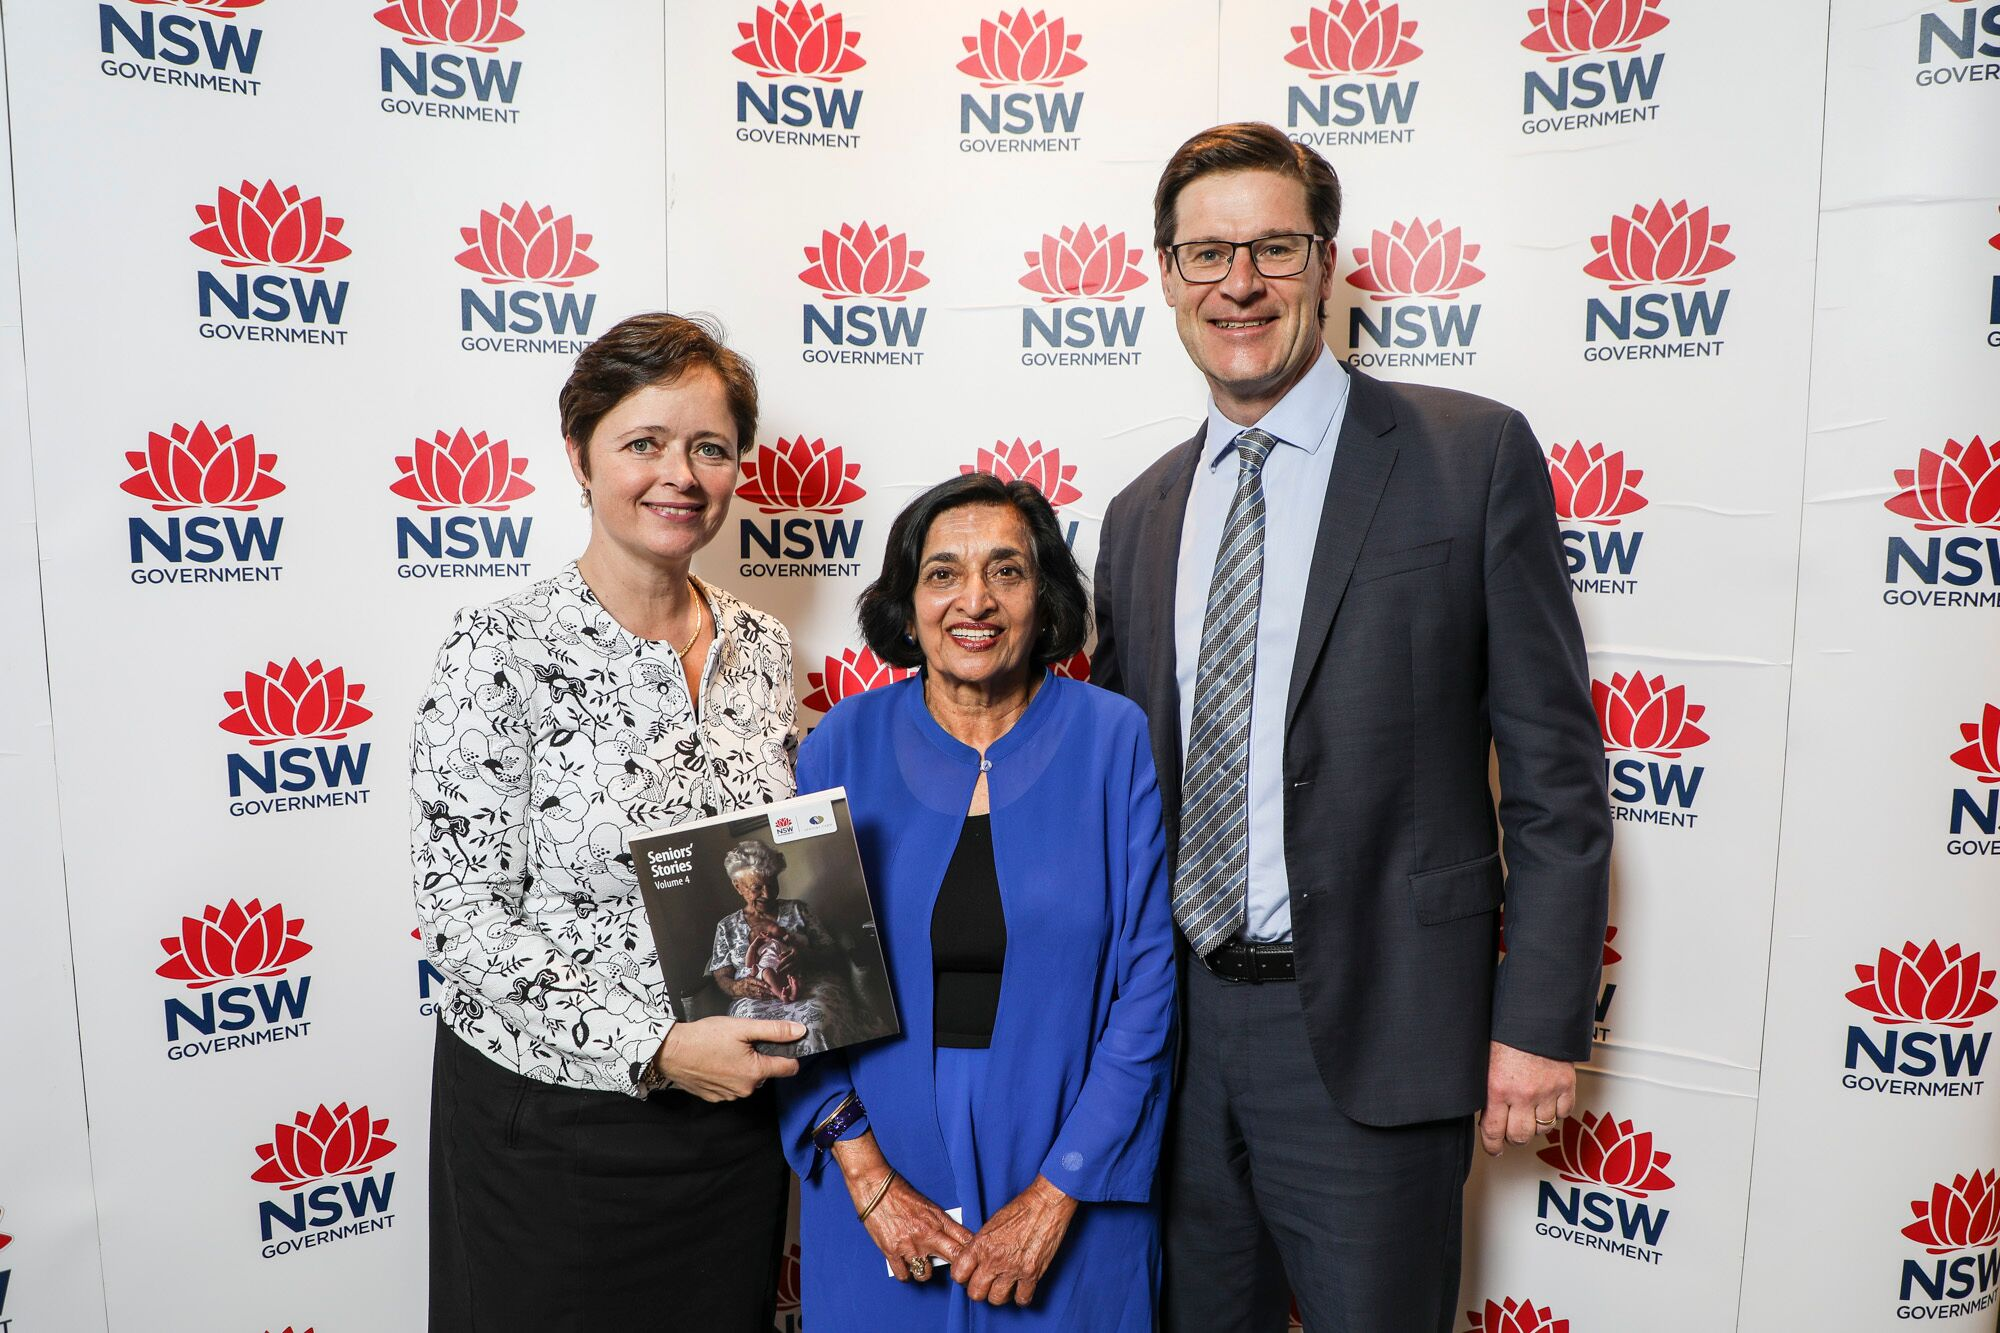 St Ives Local Dr Ramah Juta is congratulated by Minister for Ageing Tanya Davies and Member for Davidson Jonathan O'Dea for her publication in Seniors' Stories Volume 4 at NSW Parliament